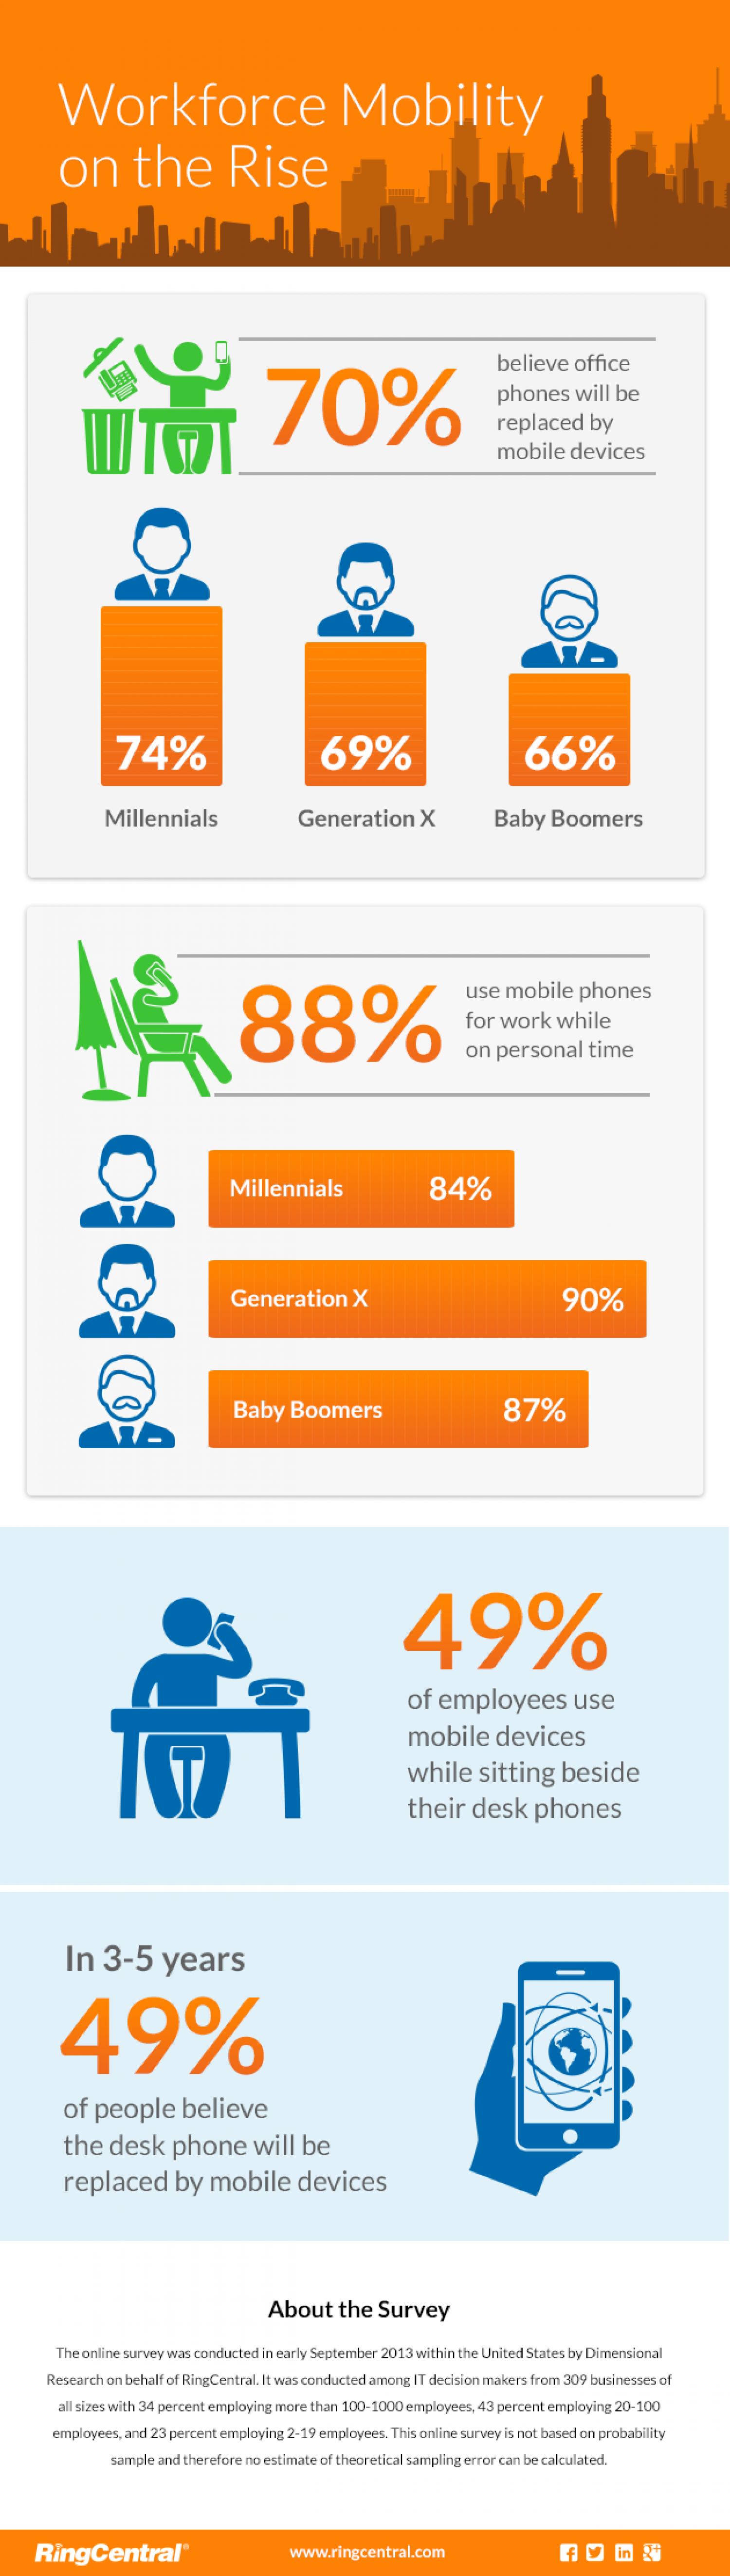 Workforce Mobility on the Rise Infographic